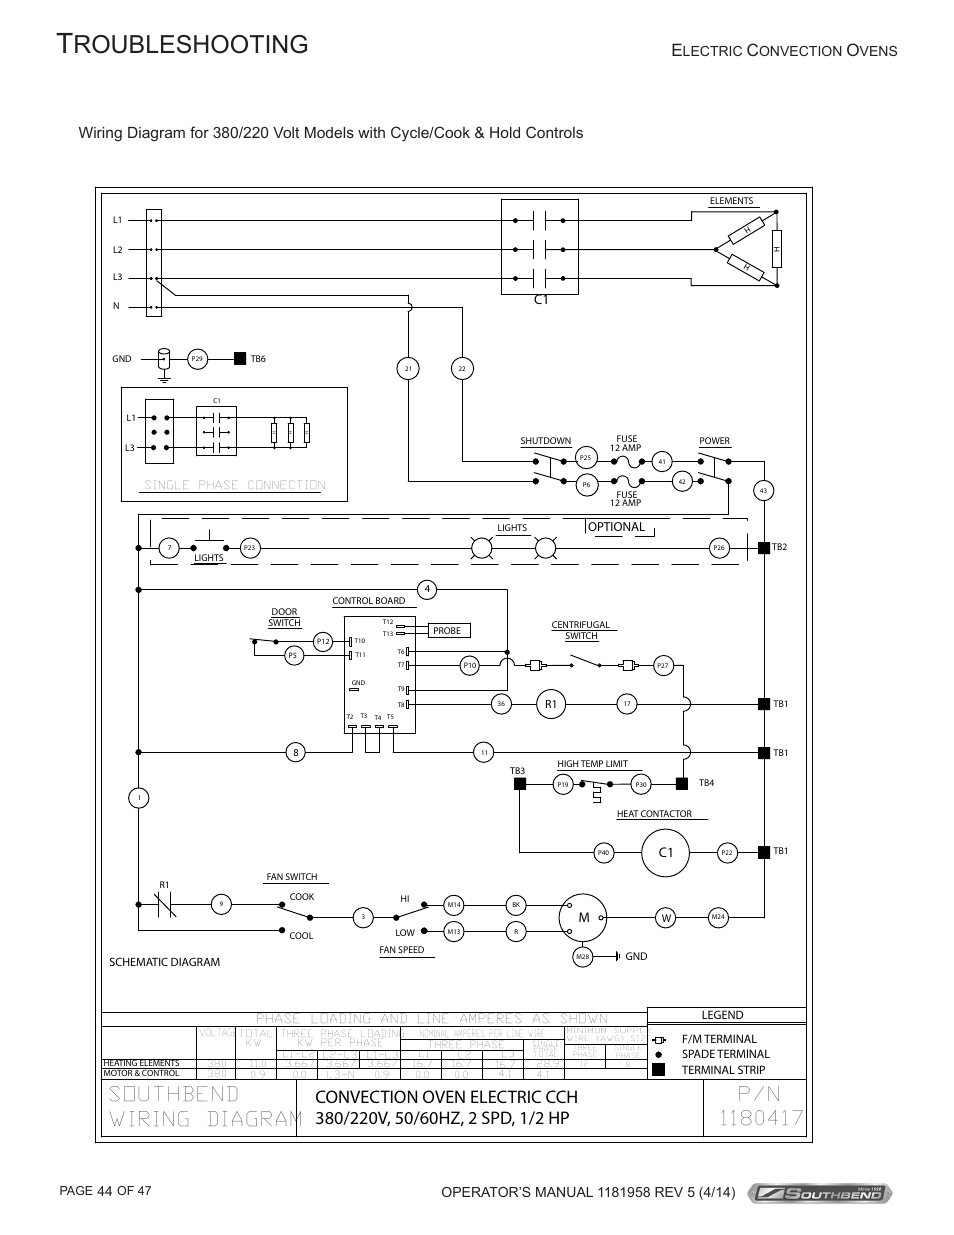 Roubleshooting  Southbend Wiring Diagram  Convection Oven Electric Cch